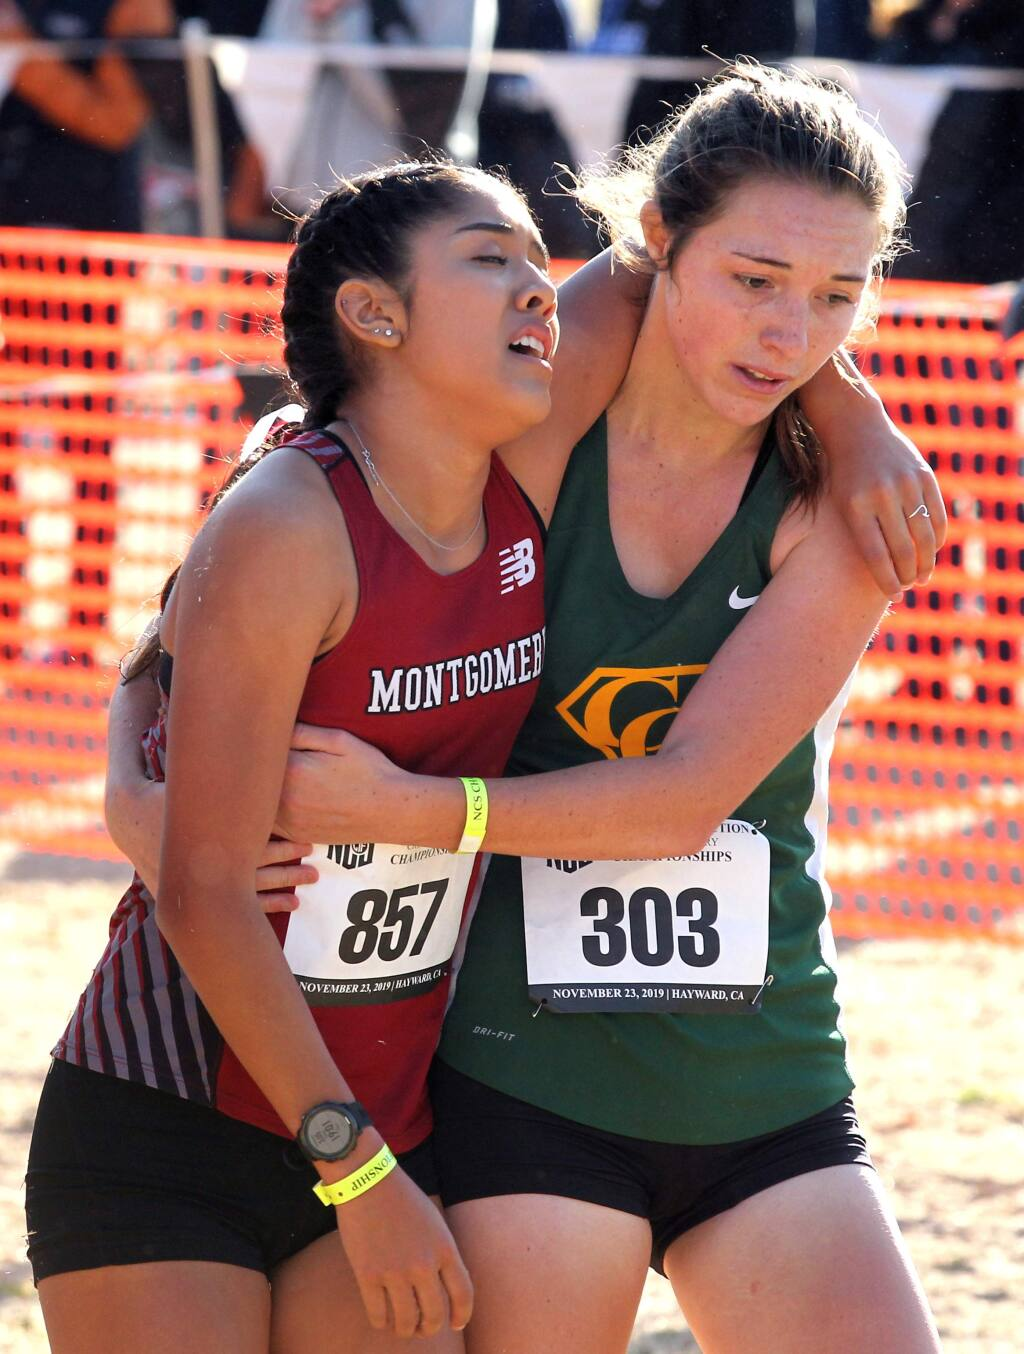 Mariah Briceno of Montgomery High, left, is hugged by Casa Grande's Emma Baswell after they finished the Division 3 girls race at the NCS cross country championships in Hayward on Saturday, Nov. 23, 2019. (Photo by Darryl Bush / For The Press Democrat)